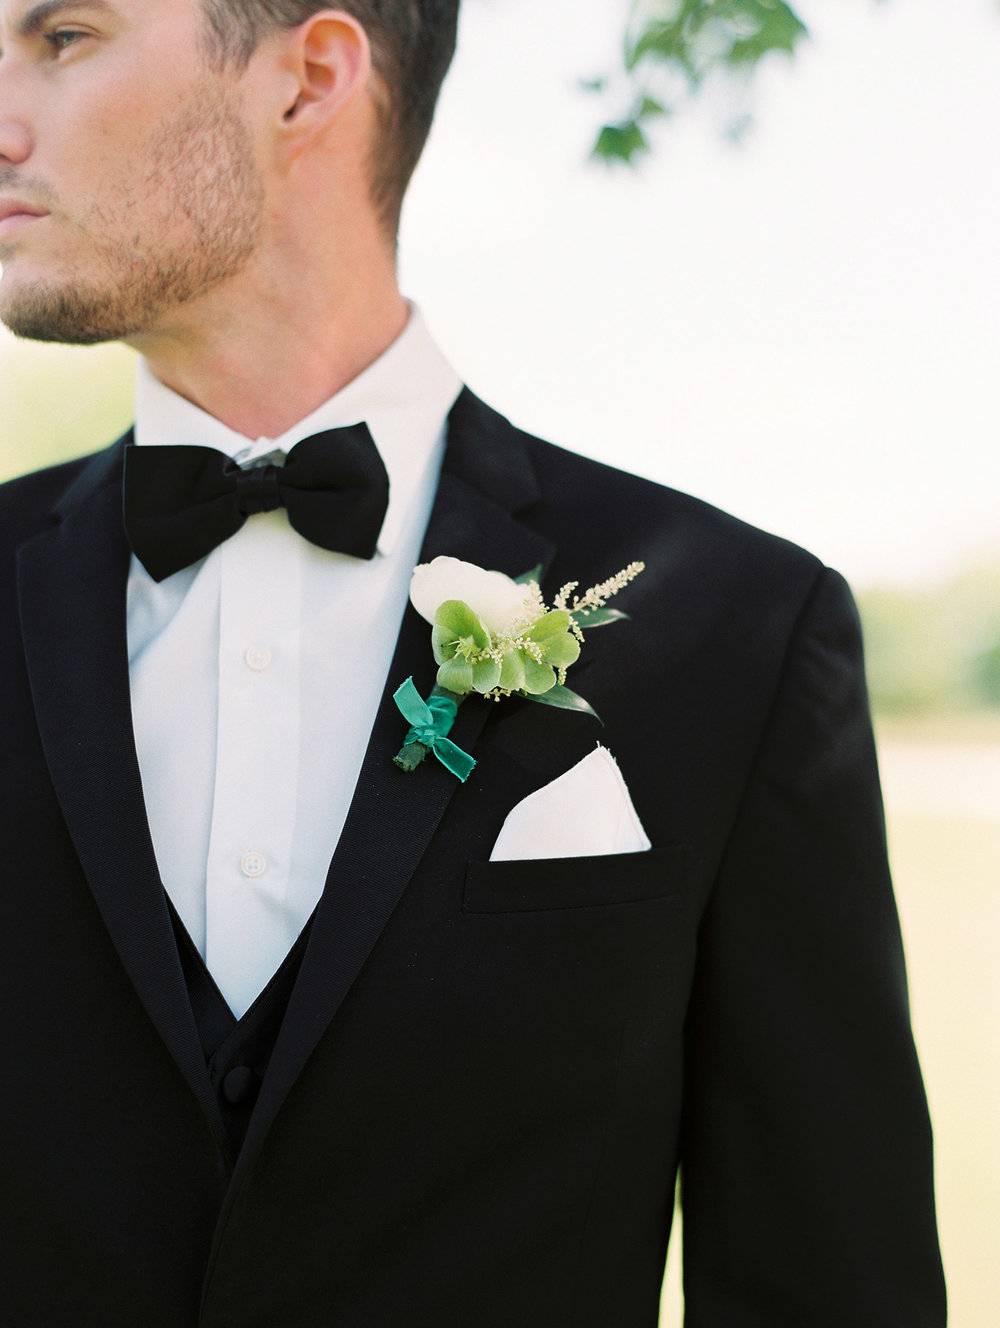 Groom in black tuxedo and black bow tie with a white boutonniere and green ribbon